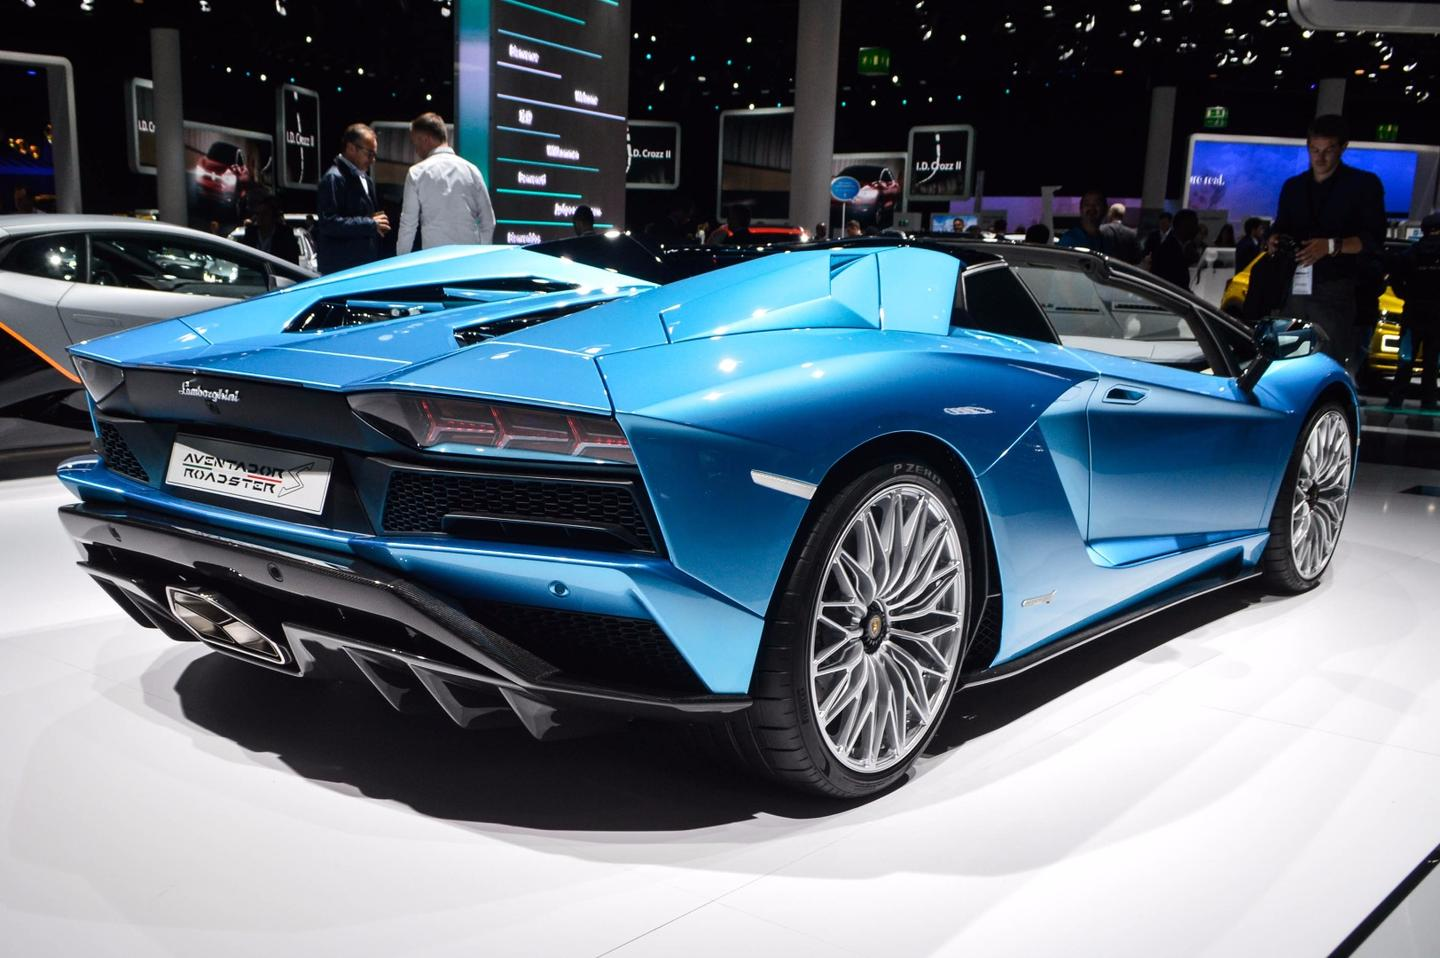 The Lamborghini Aventador S Roadster has rear-wheel steering